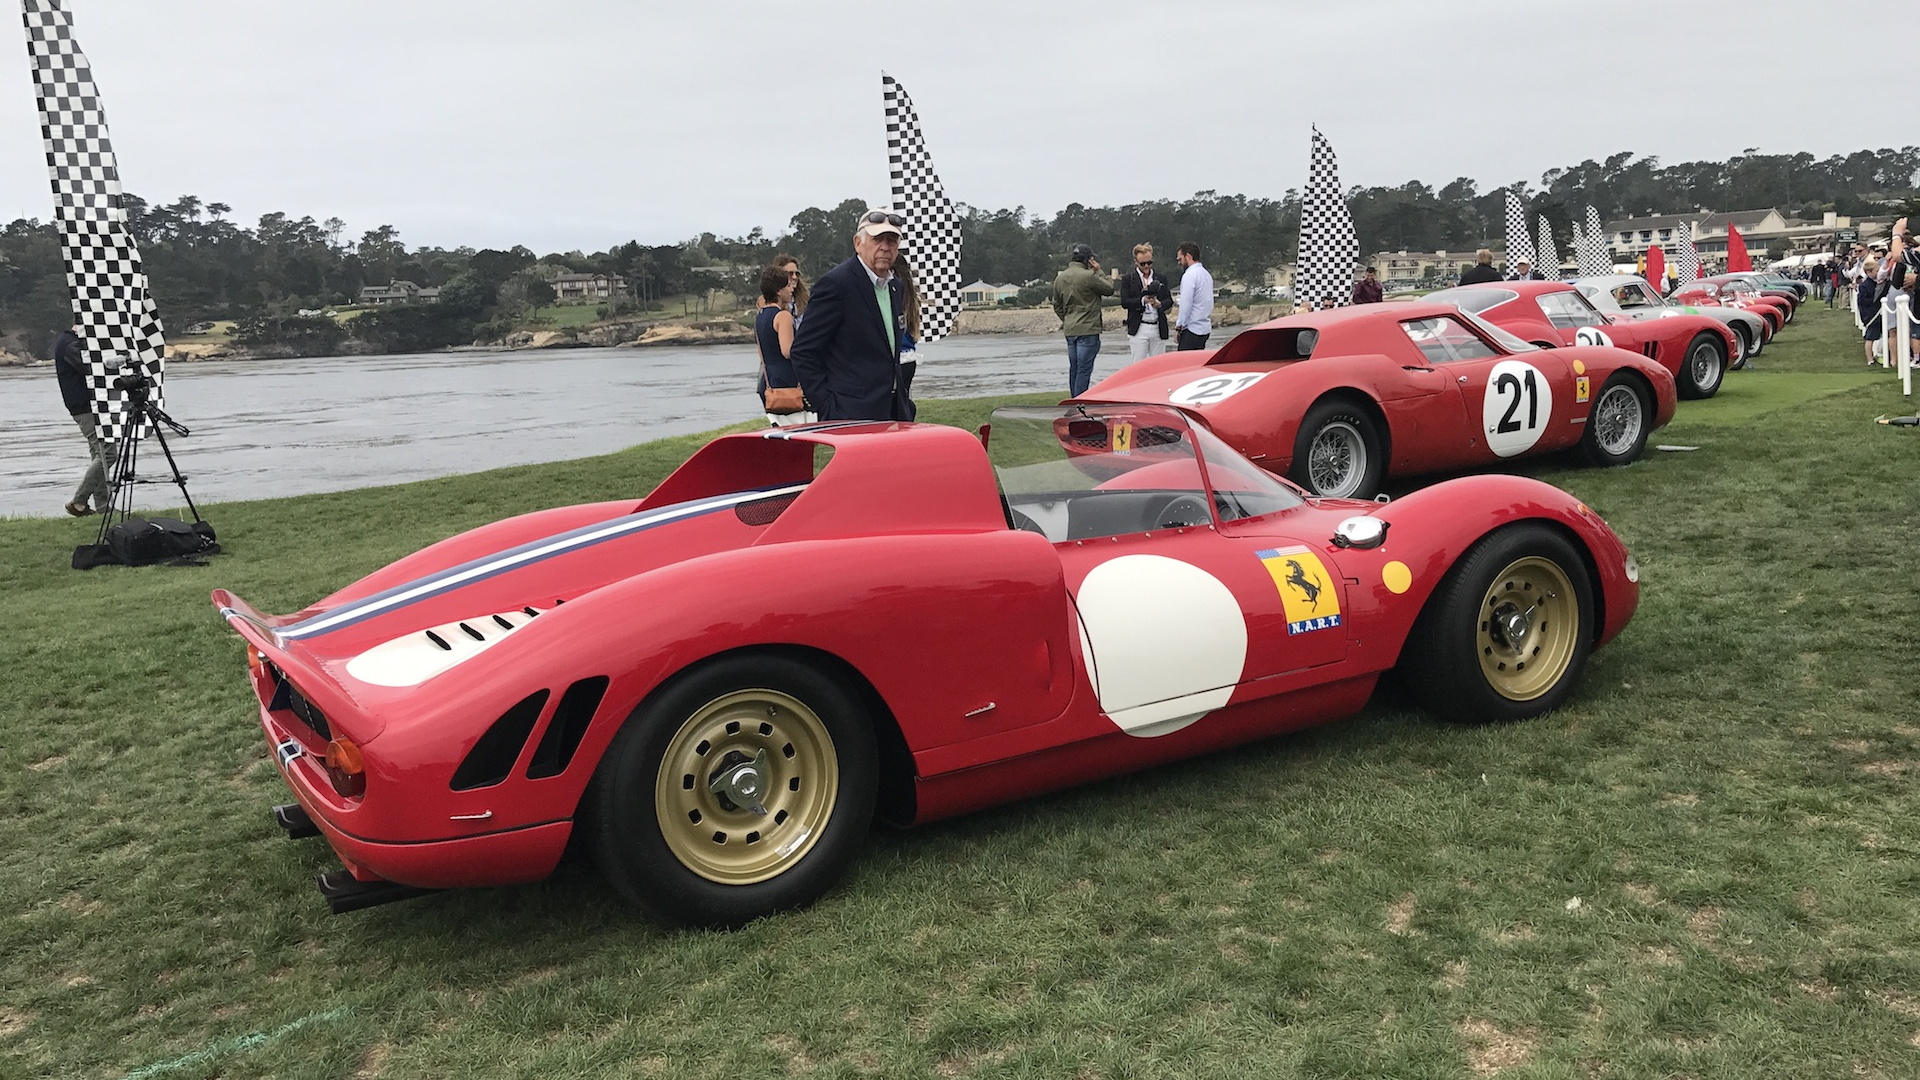 Ferraris at the 2017 Pebble Beach Concours d'Elegance